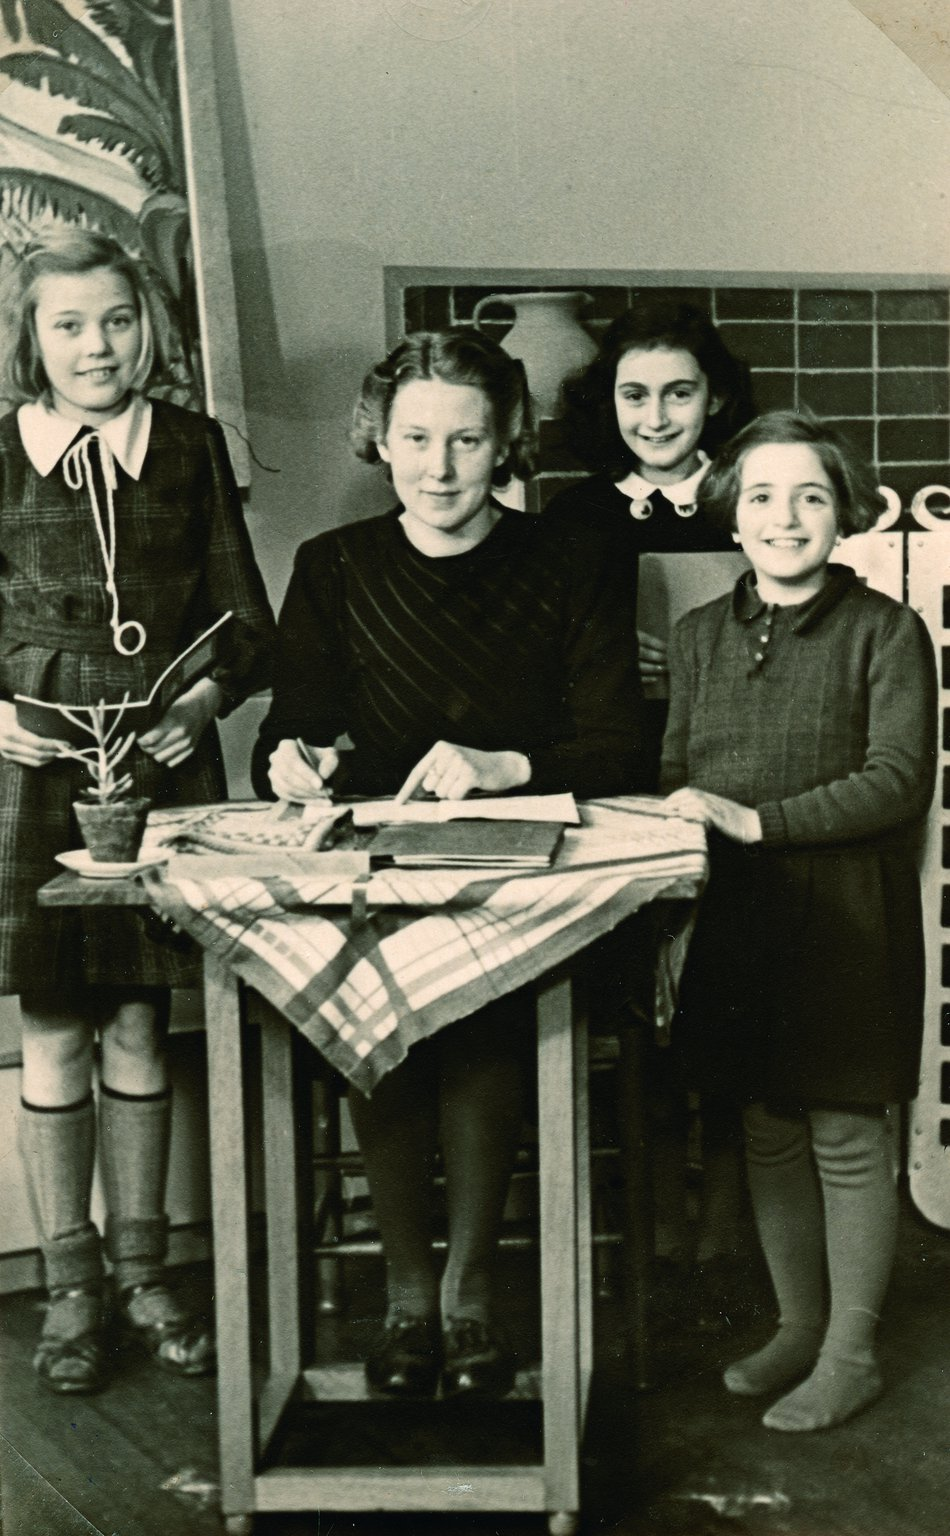 Anne at primary school with her teacher and two classmates. From left to right: Martha van den Berg - Miss Godron - Anne - Rela Salomon.